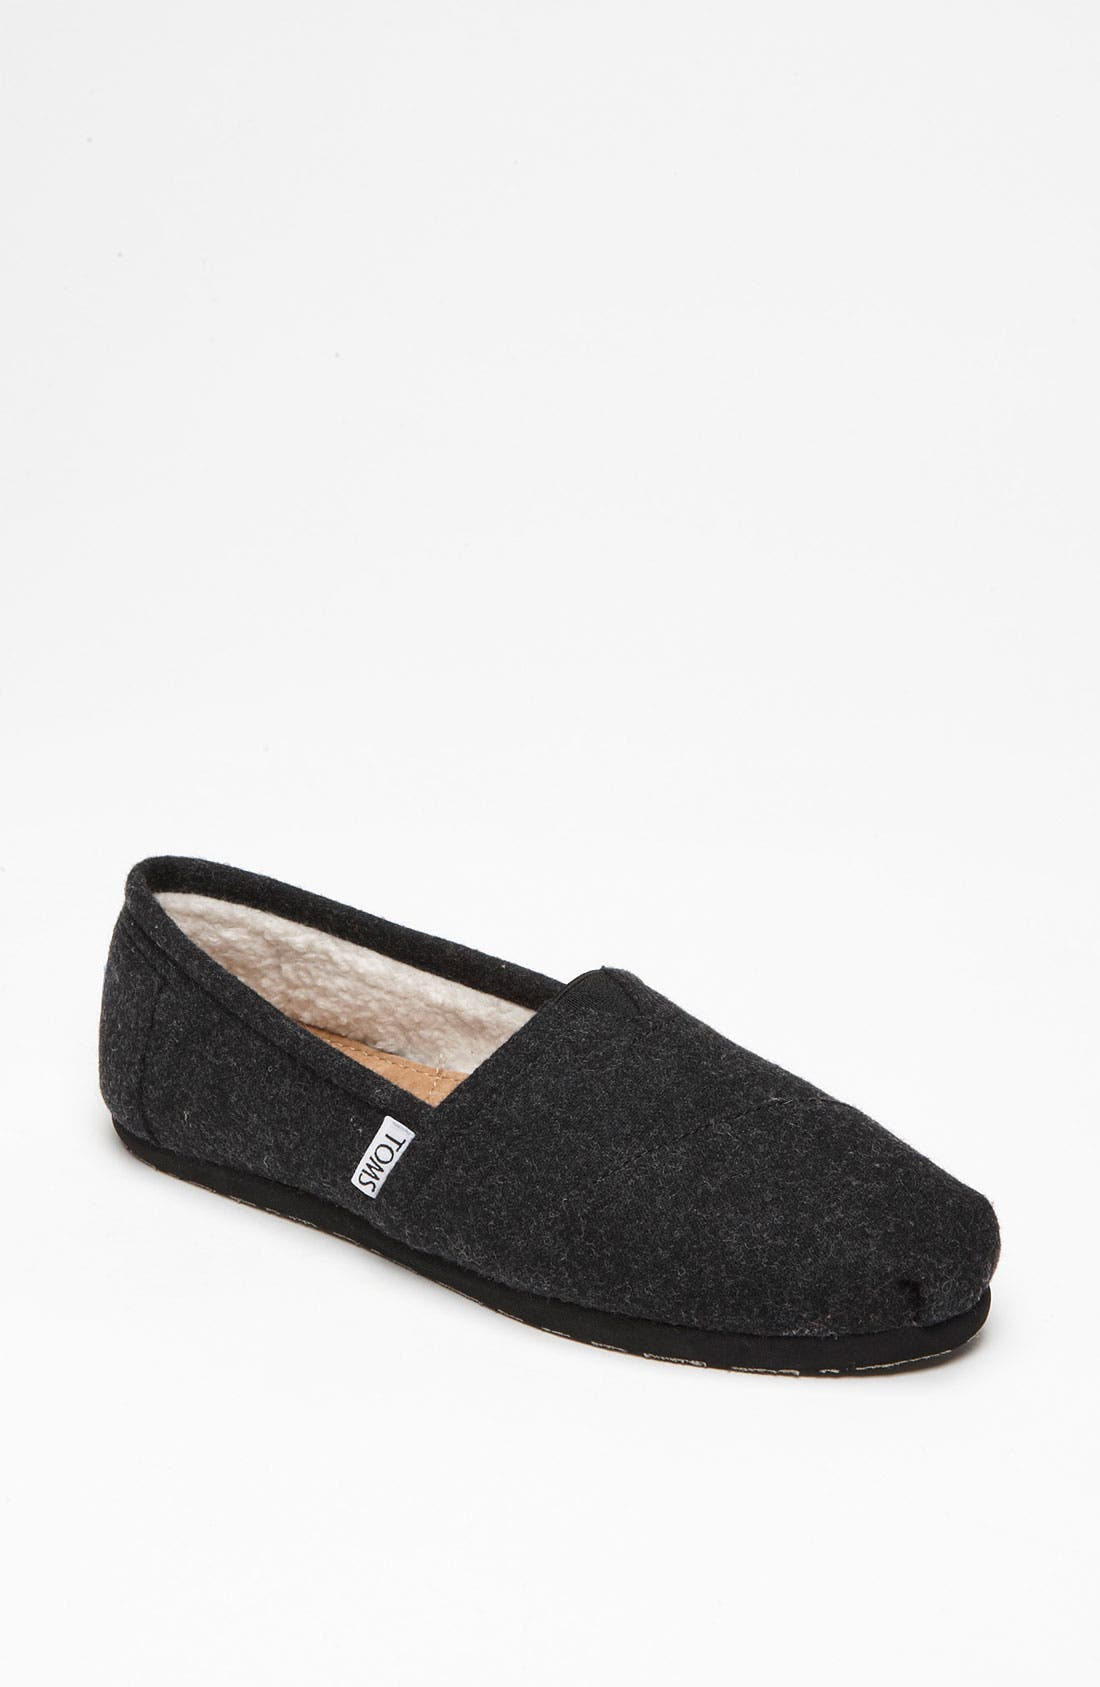 Alternate Image 1 Selected - TOMS 'Classic' Slip-On (Women)